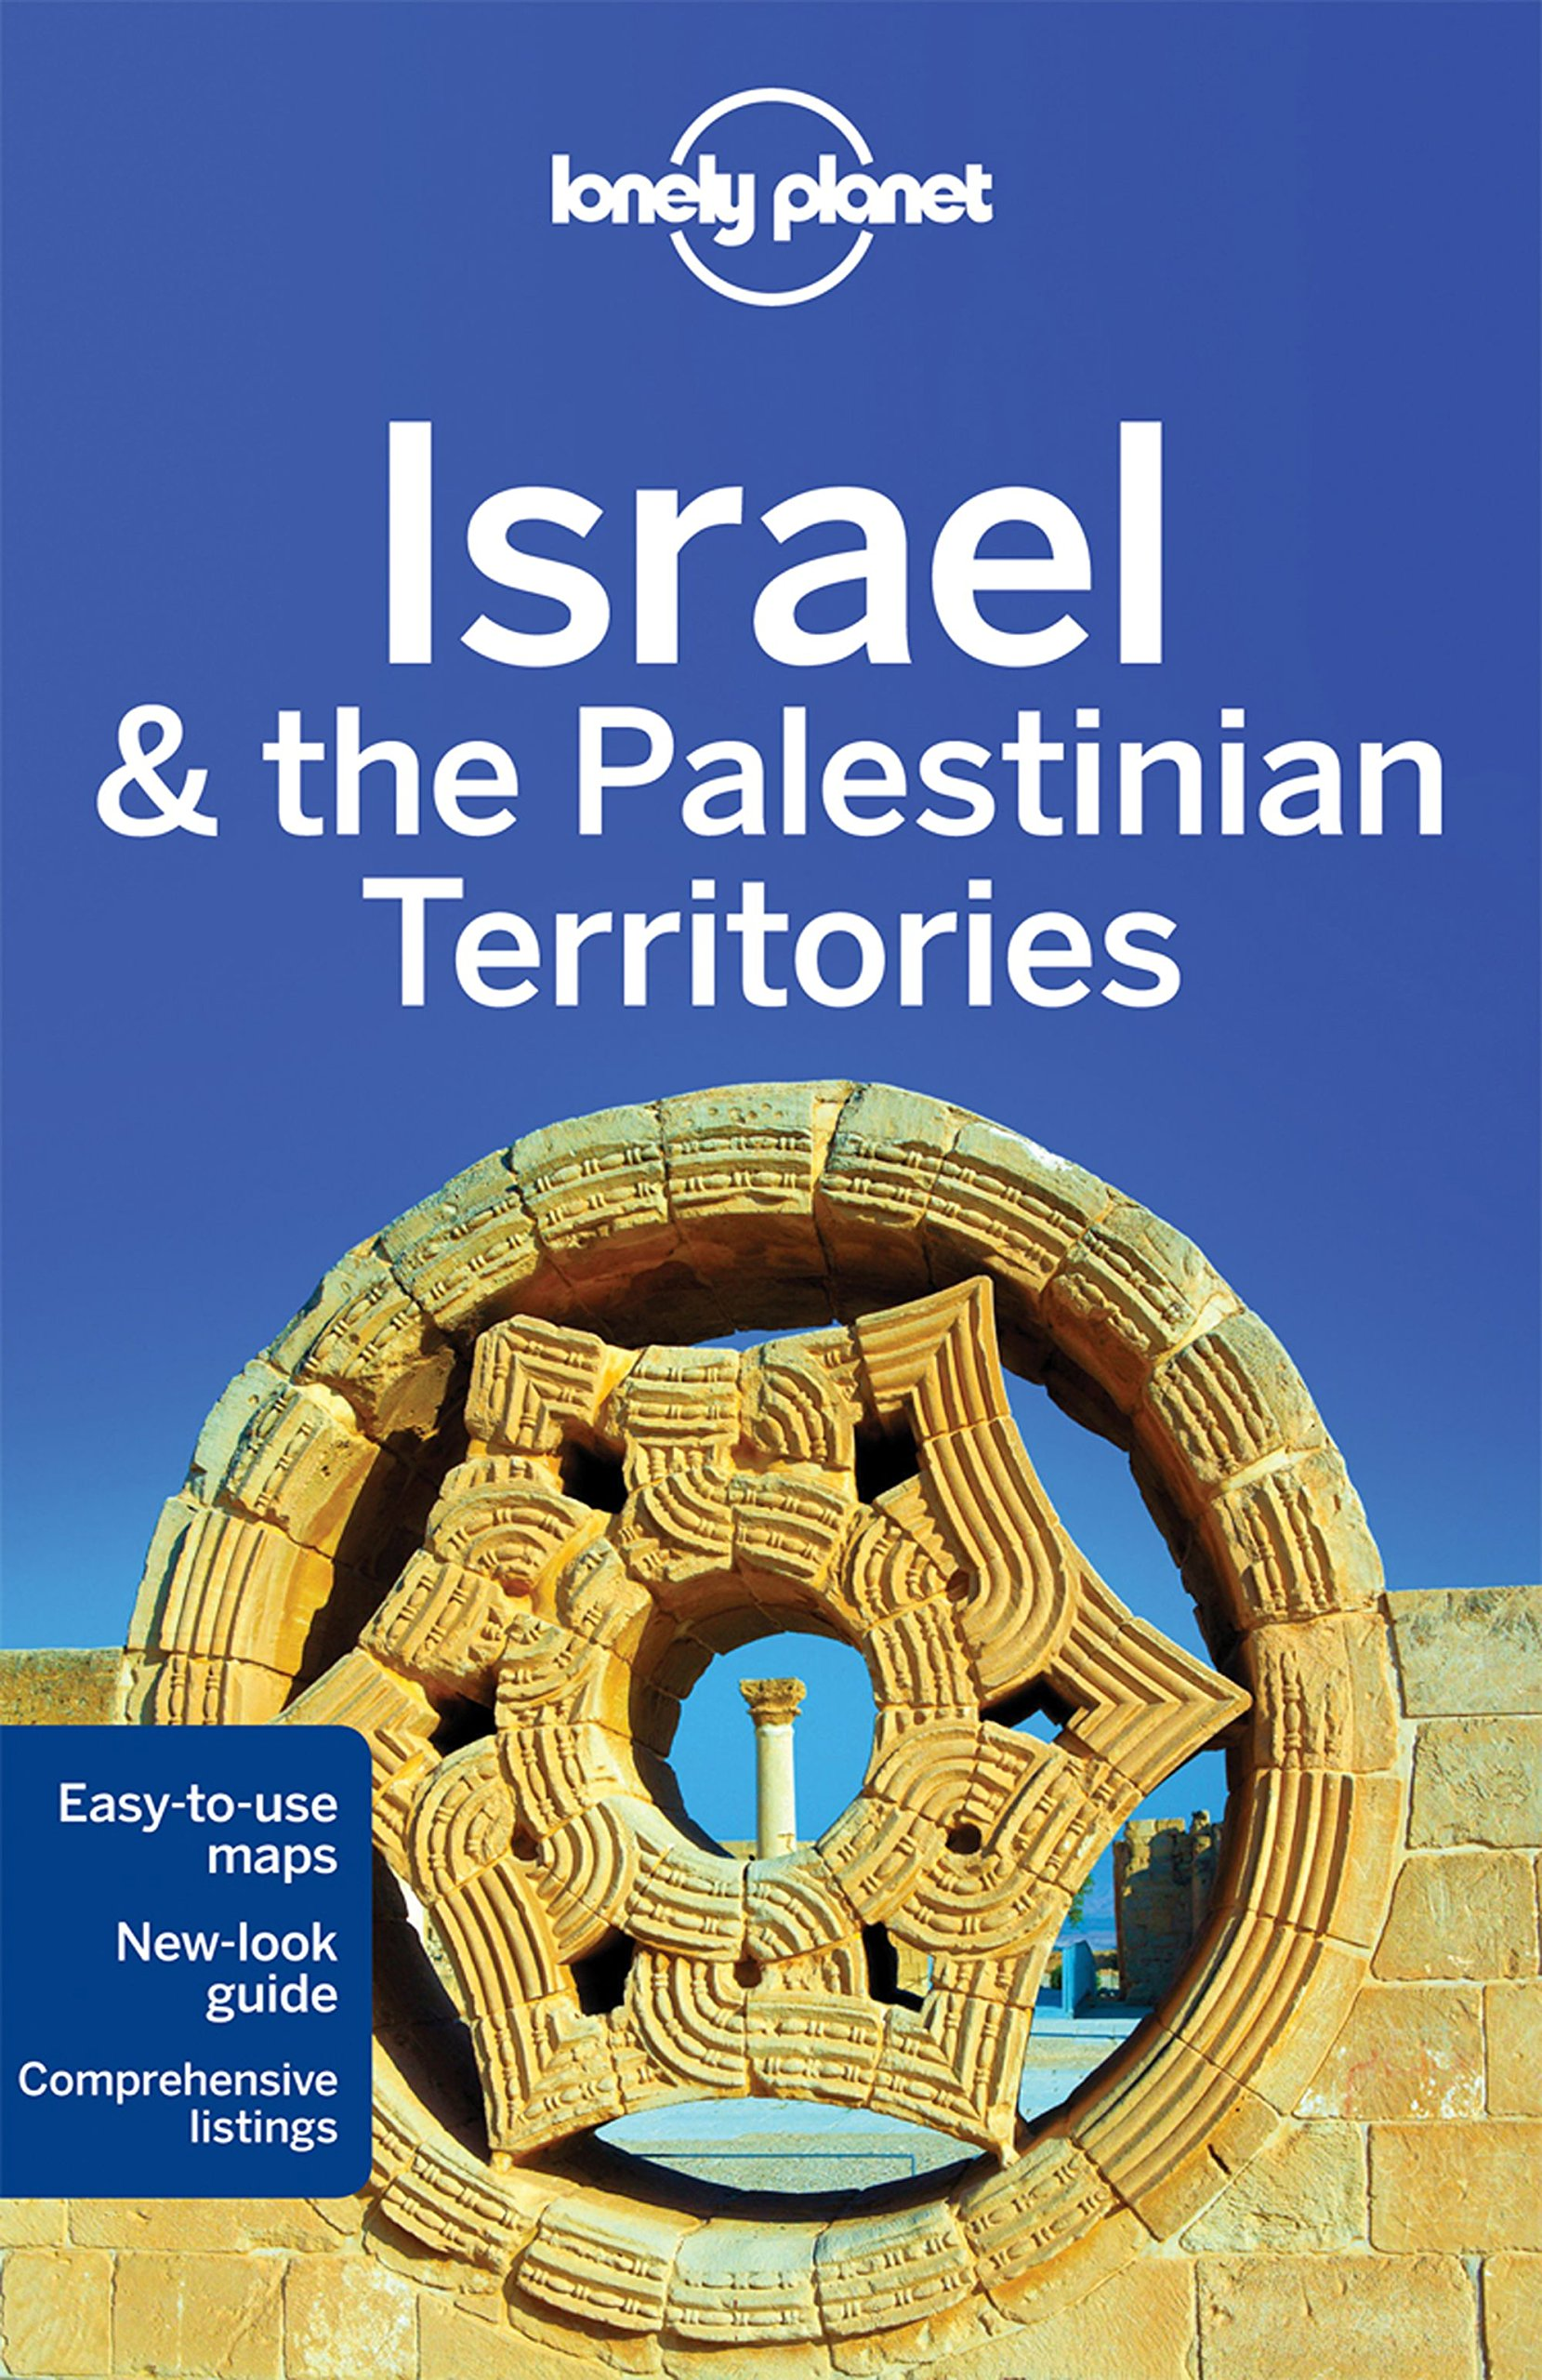 Israel & Palestinian Territories / průvodce Lonely Planet (anglicky) - Daniel Robinson